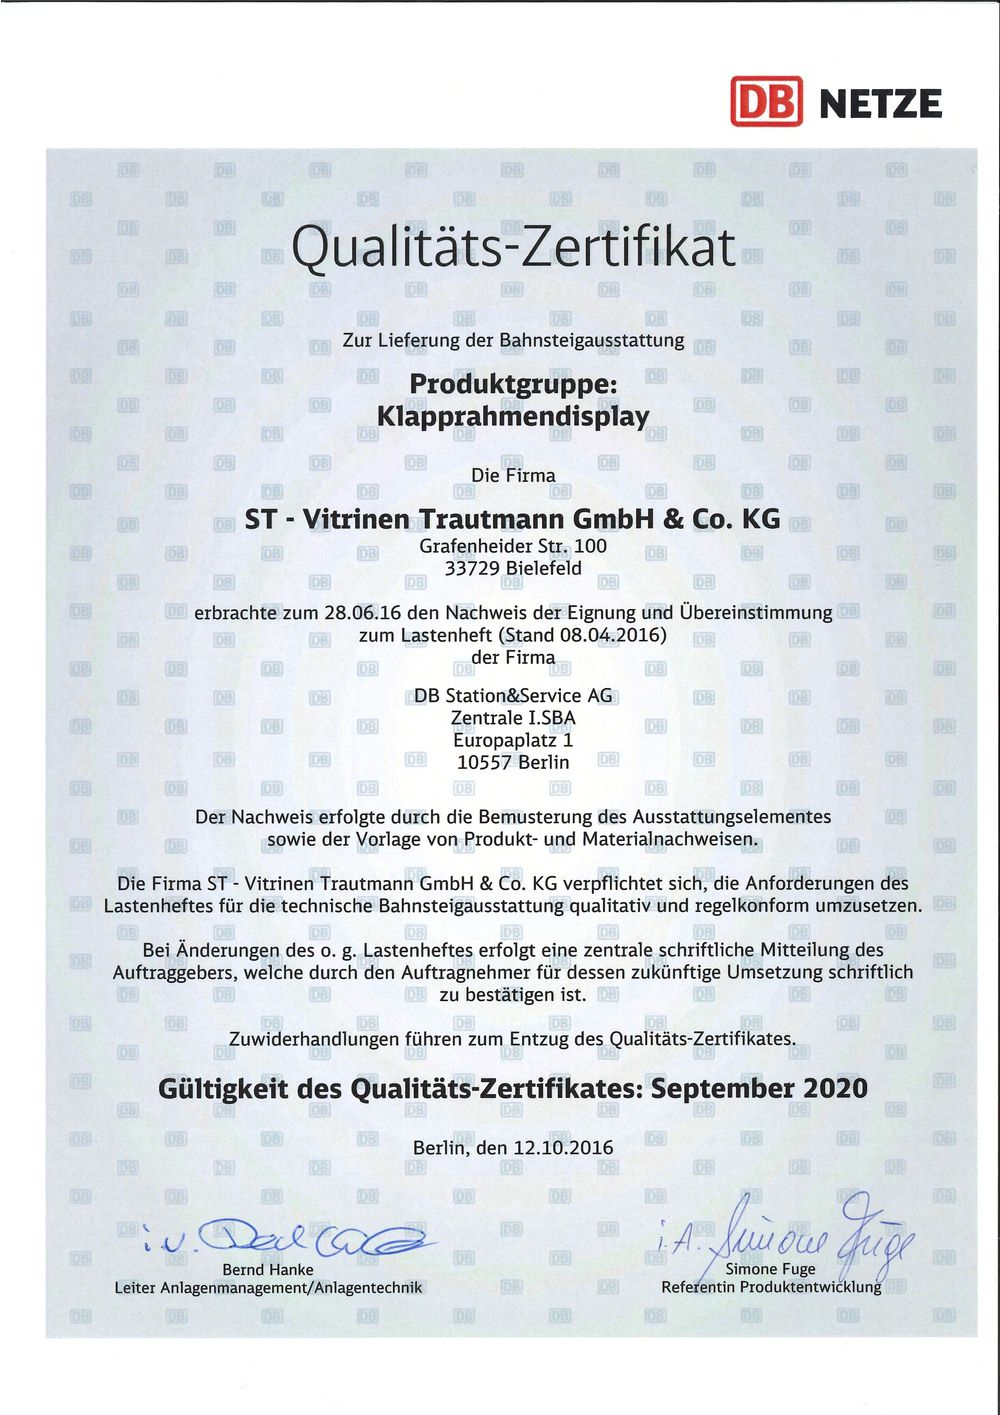 Groß Kampfkunst Zertifikat Vorlagen Fotos - Entry Level Resume ...